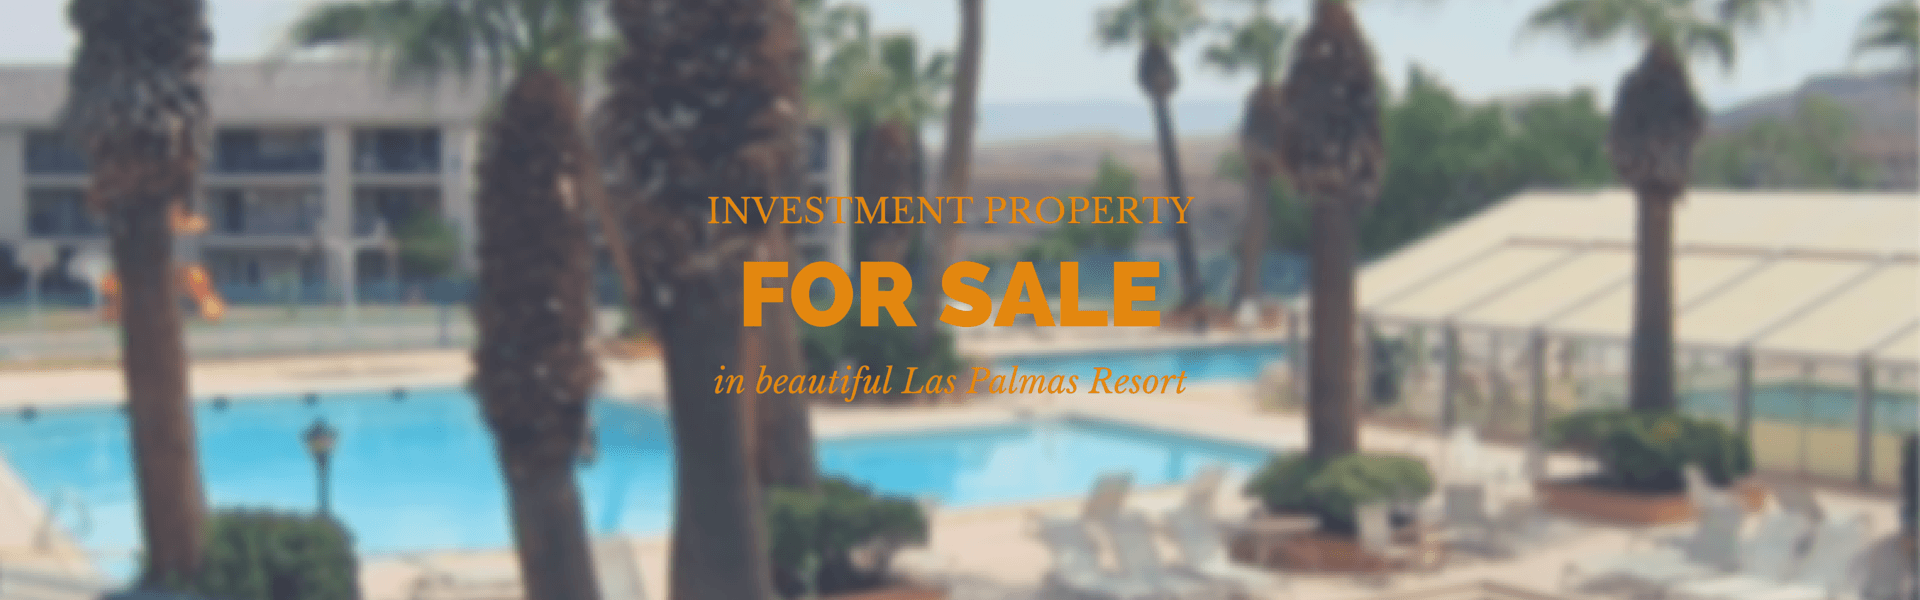 Investment Property For Sale - $309,900